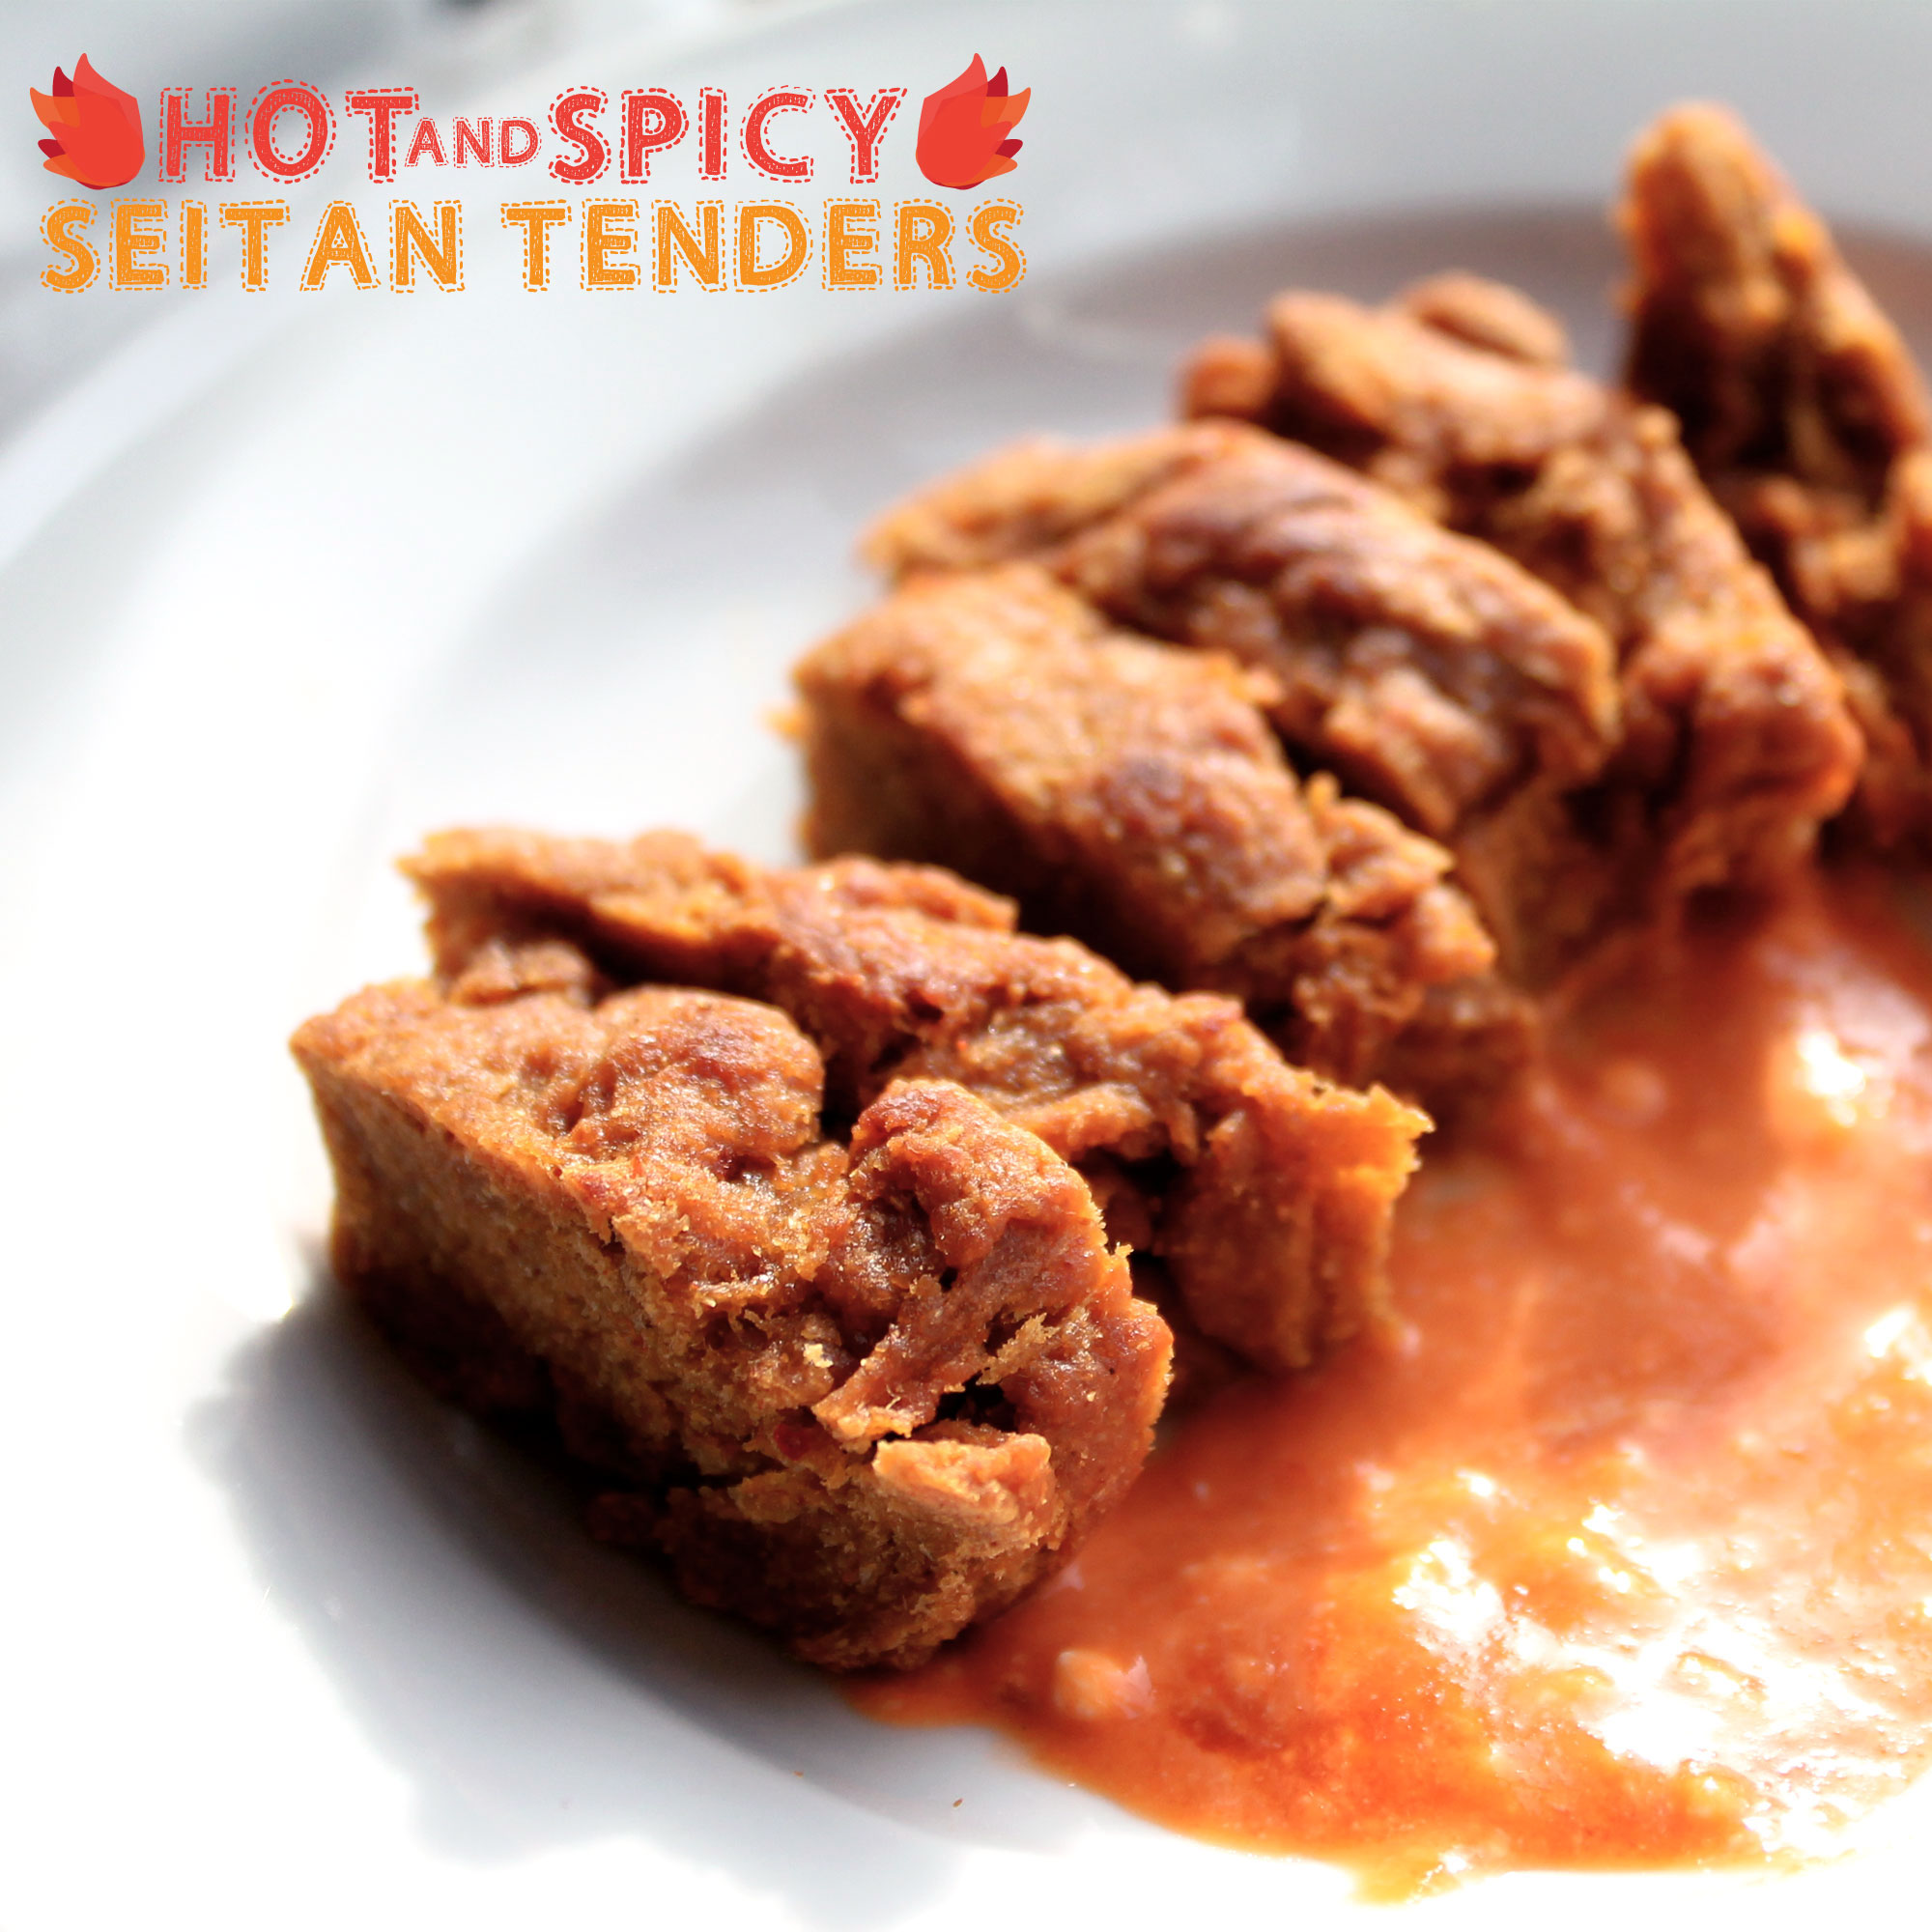 hot and spicy seitan tenders